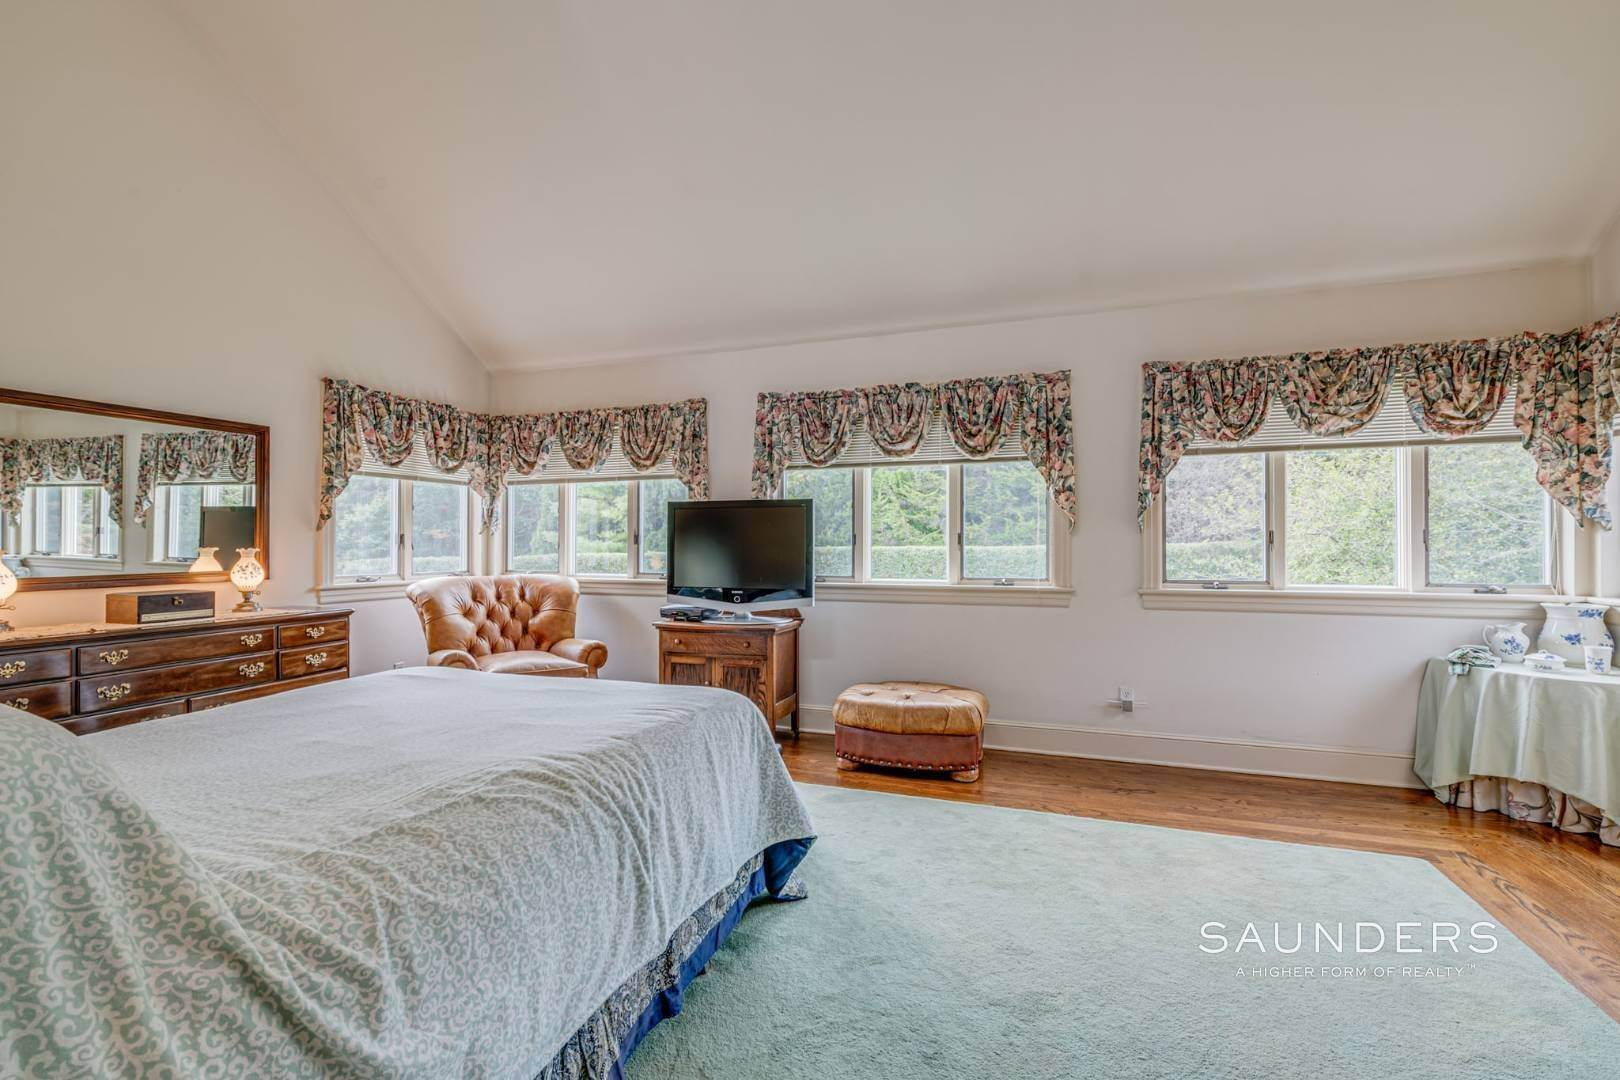 17. Single Family Homes for Sale at Prime 2.8 Acres In Sagaponack Village W/ Barn & Room For Tennis 44 Greenleaf Lane, Sagaponack Village, Southampton Town, NY 11962